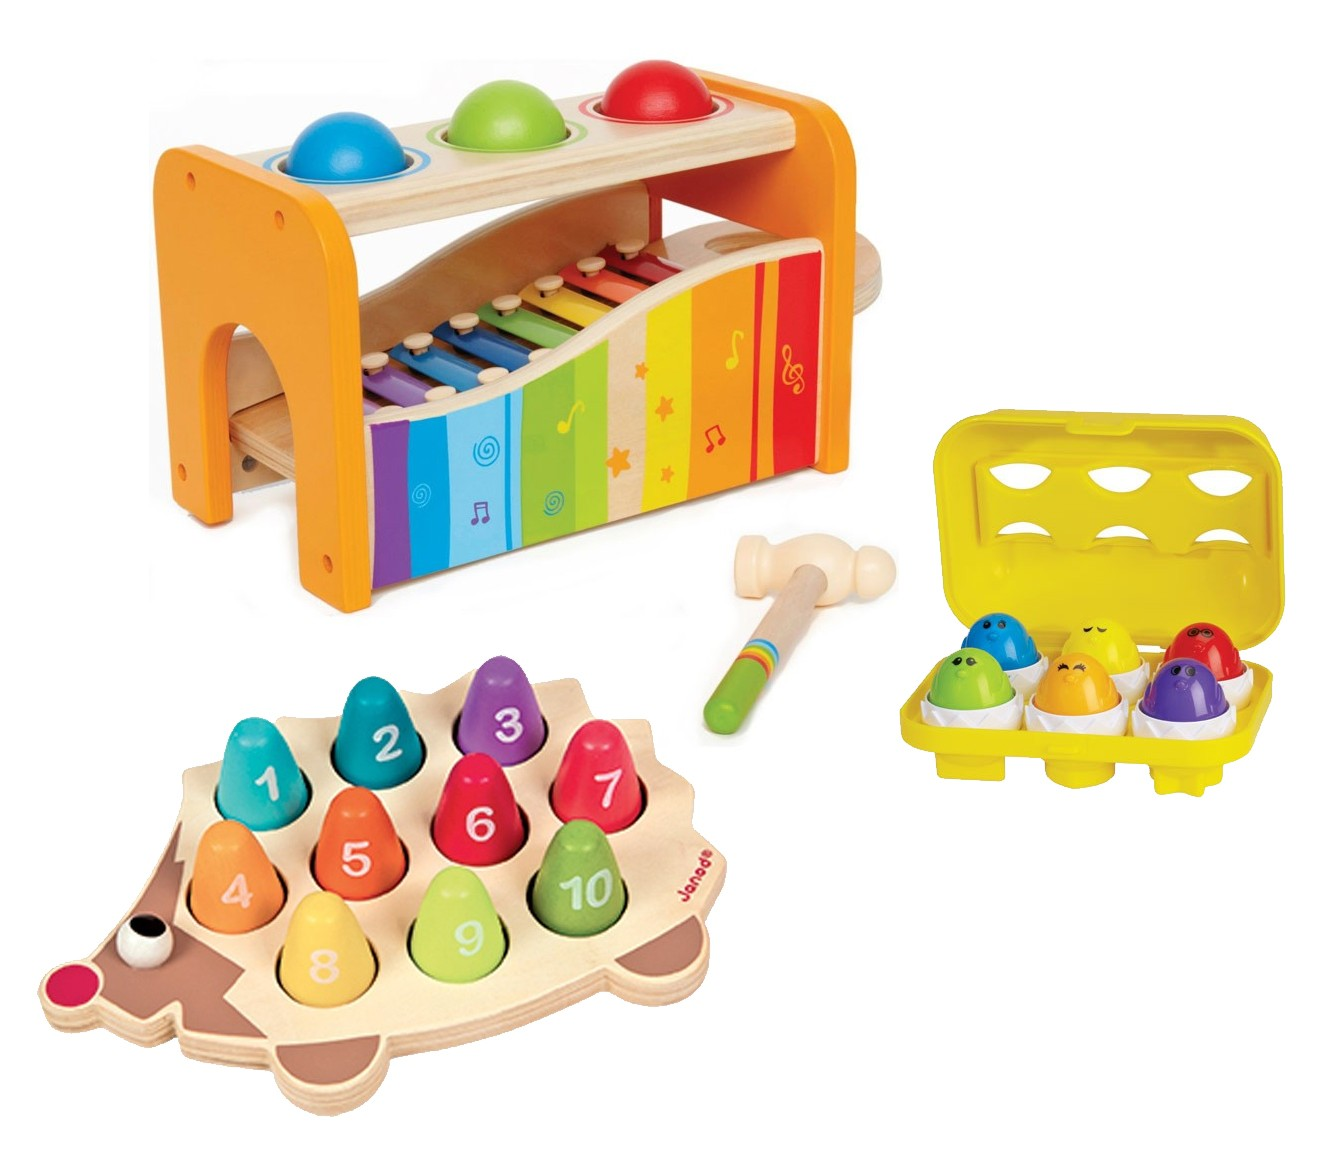 Toddler Toys Physical Toys : Cognitive development kit for months educational